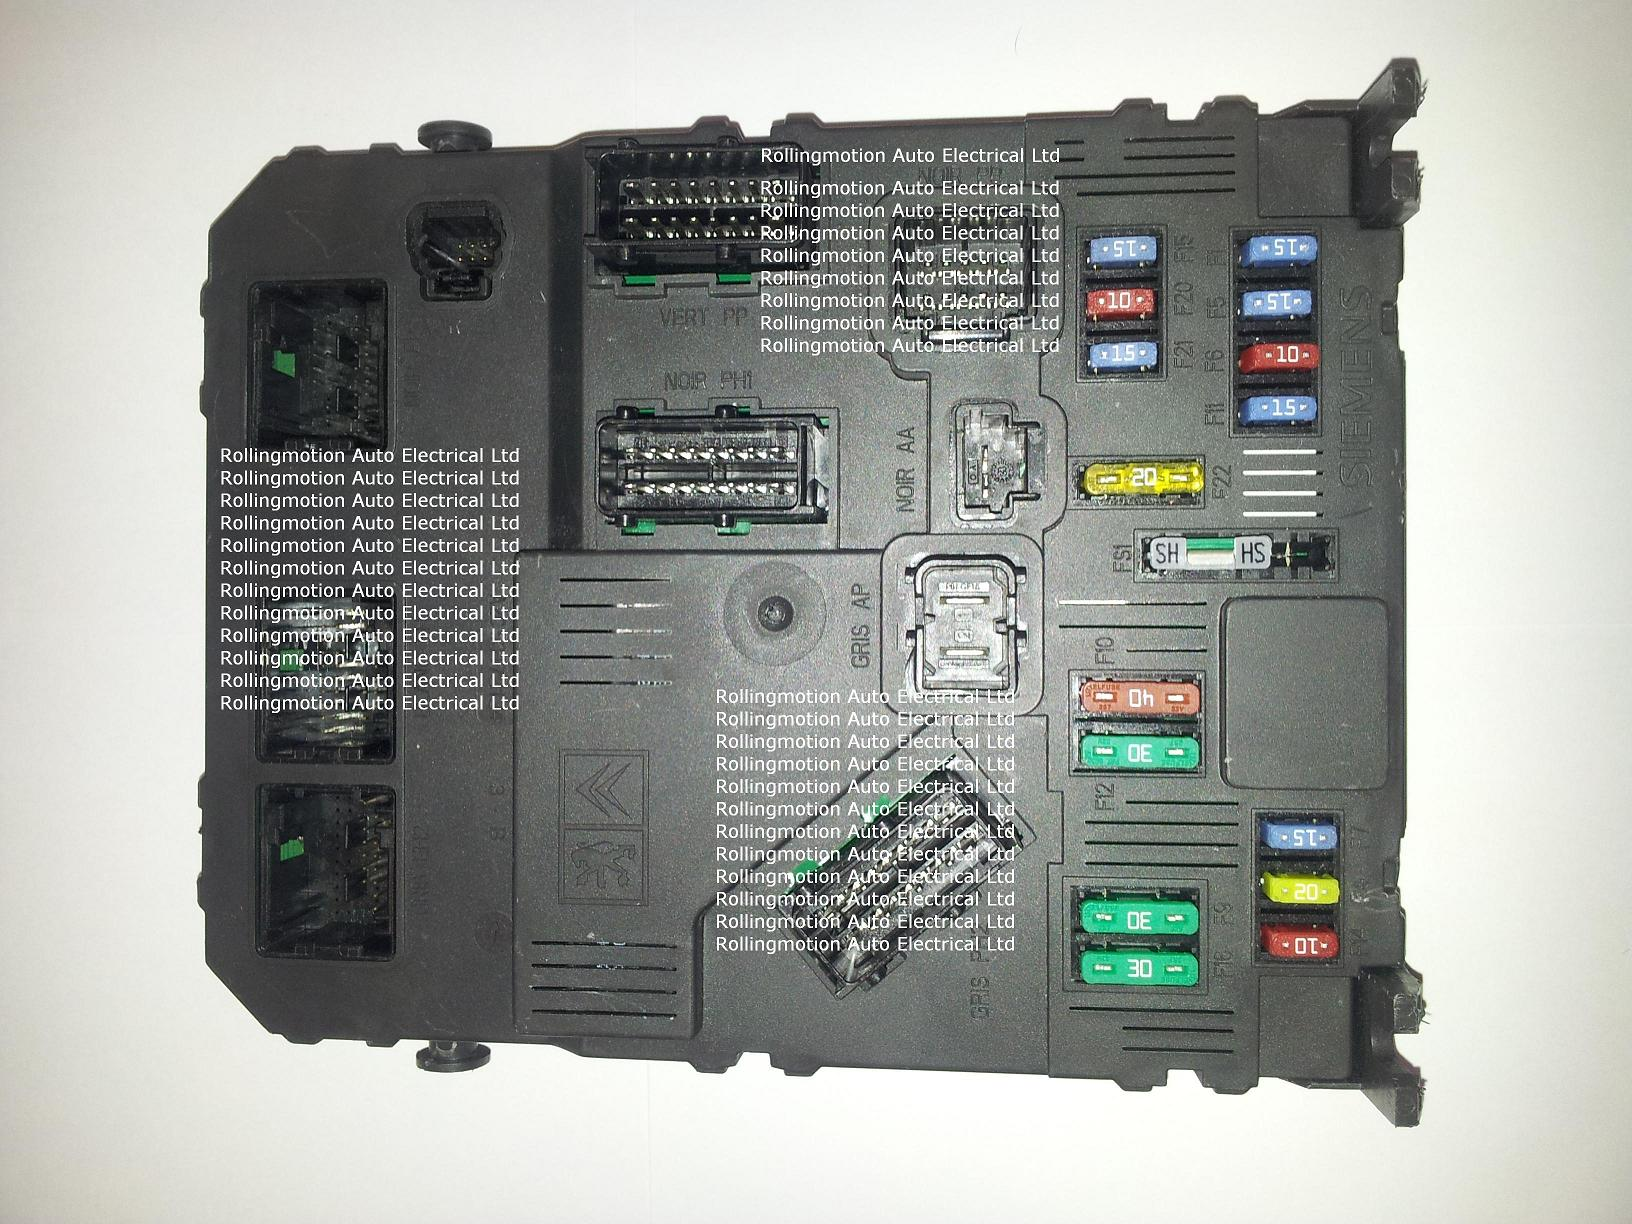 citroen c4 fuse box repair wiring diagram C6 Corvette Fuse Box citroen c4 fuse box repair wiring diagramcitroen c4 fuse box repair chloeminette co uk \\\\